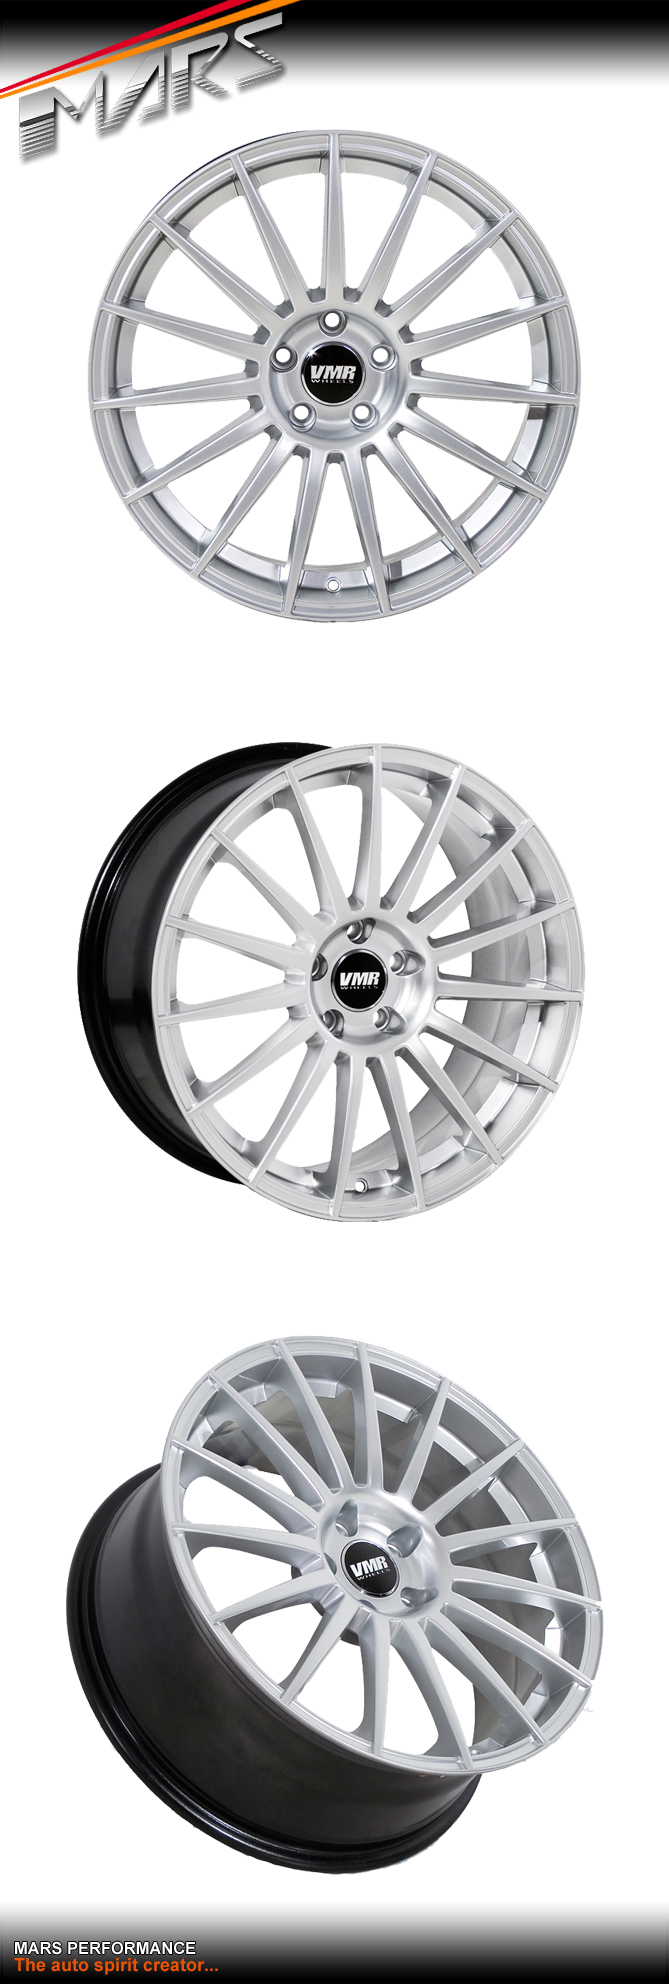 how to find alloy wheel load rating